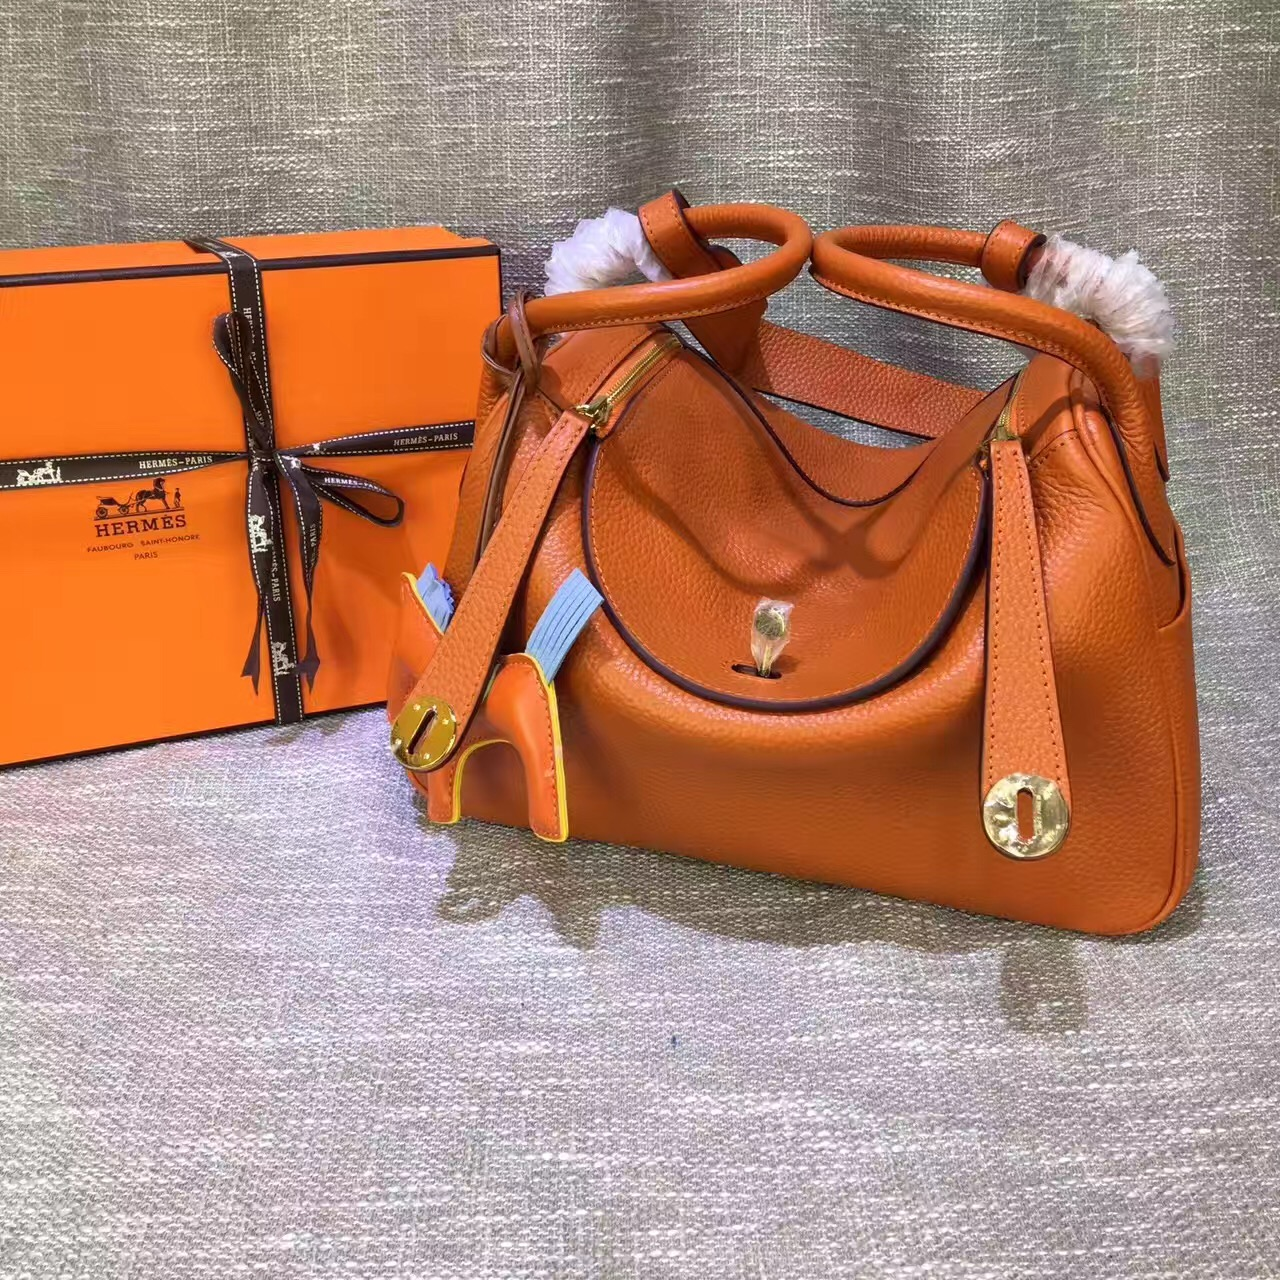 5b97fdea9f11 Hermes Lindy orange handbags  hermes222  -  272.00   Luxury Shop